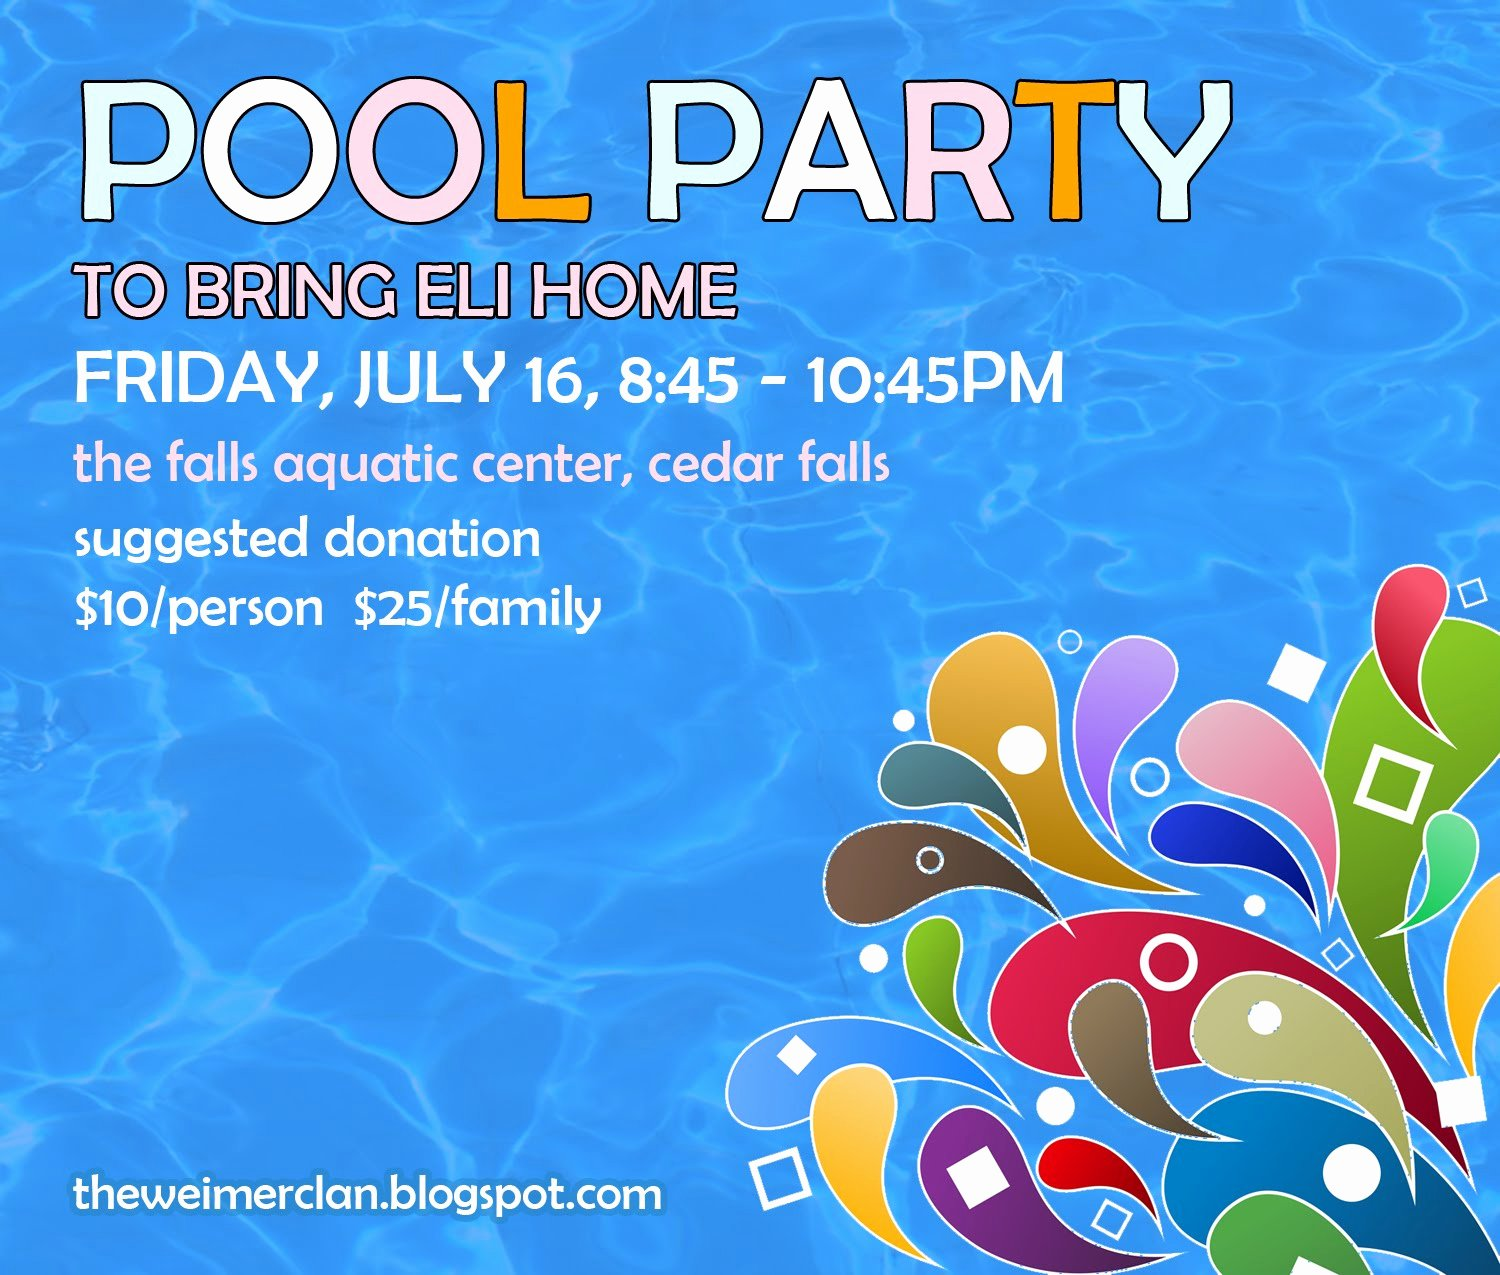 Pool Party Flyer Template Inspirational Bring Home Eli Save the Date Pool Party